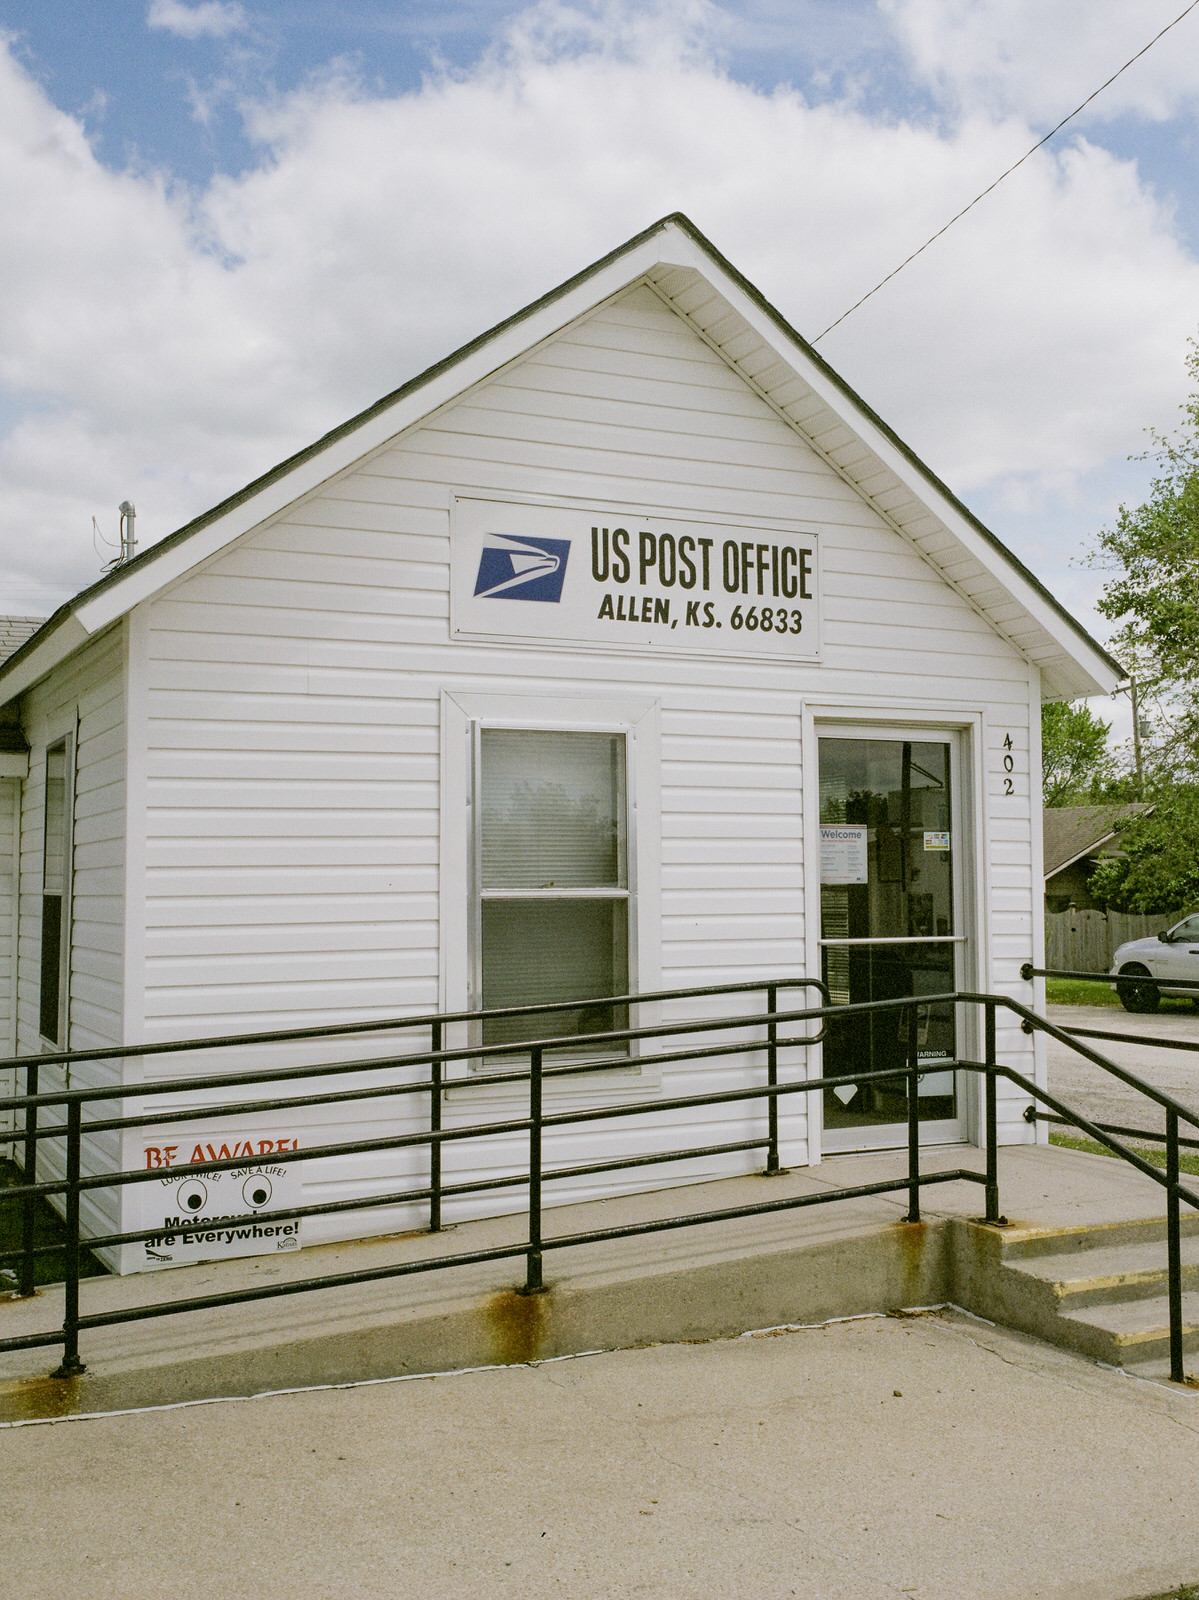 The Allen post office, where Don worked for a short bit!